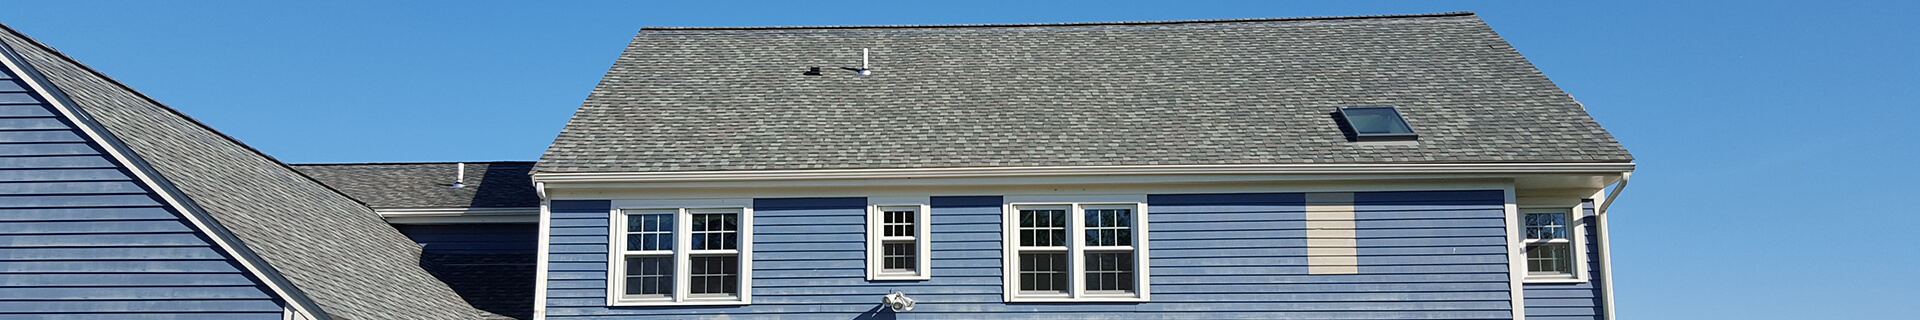 Best Roofing Options